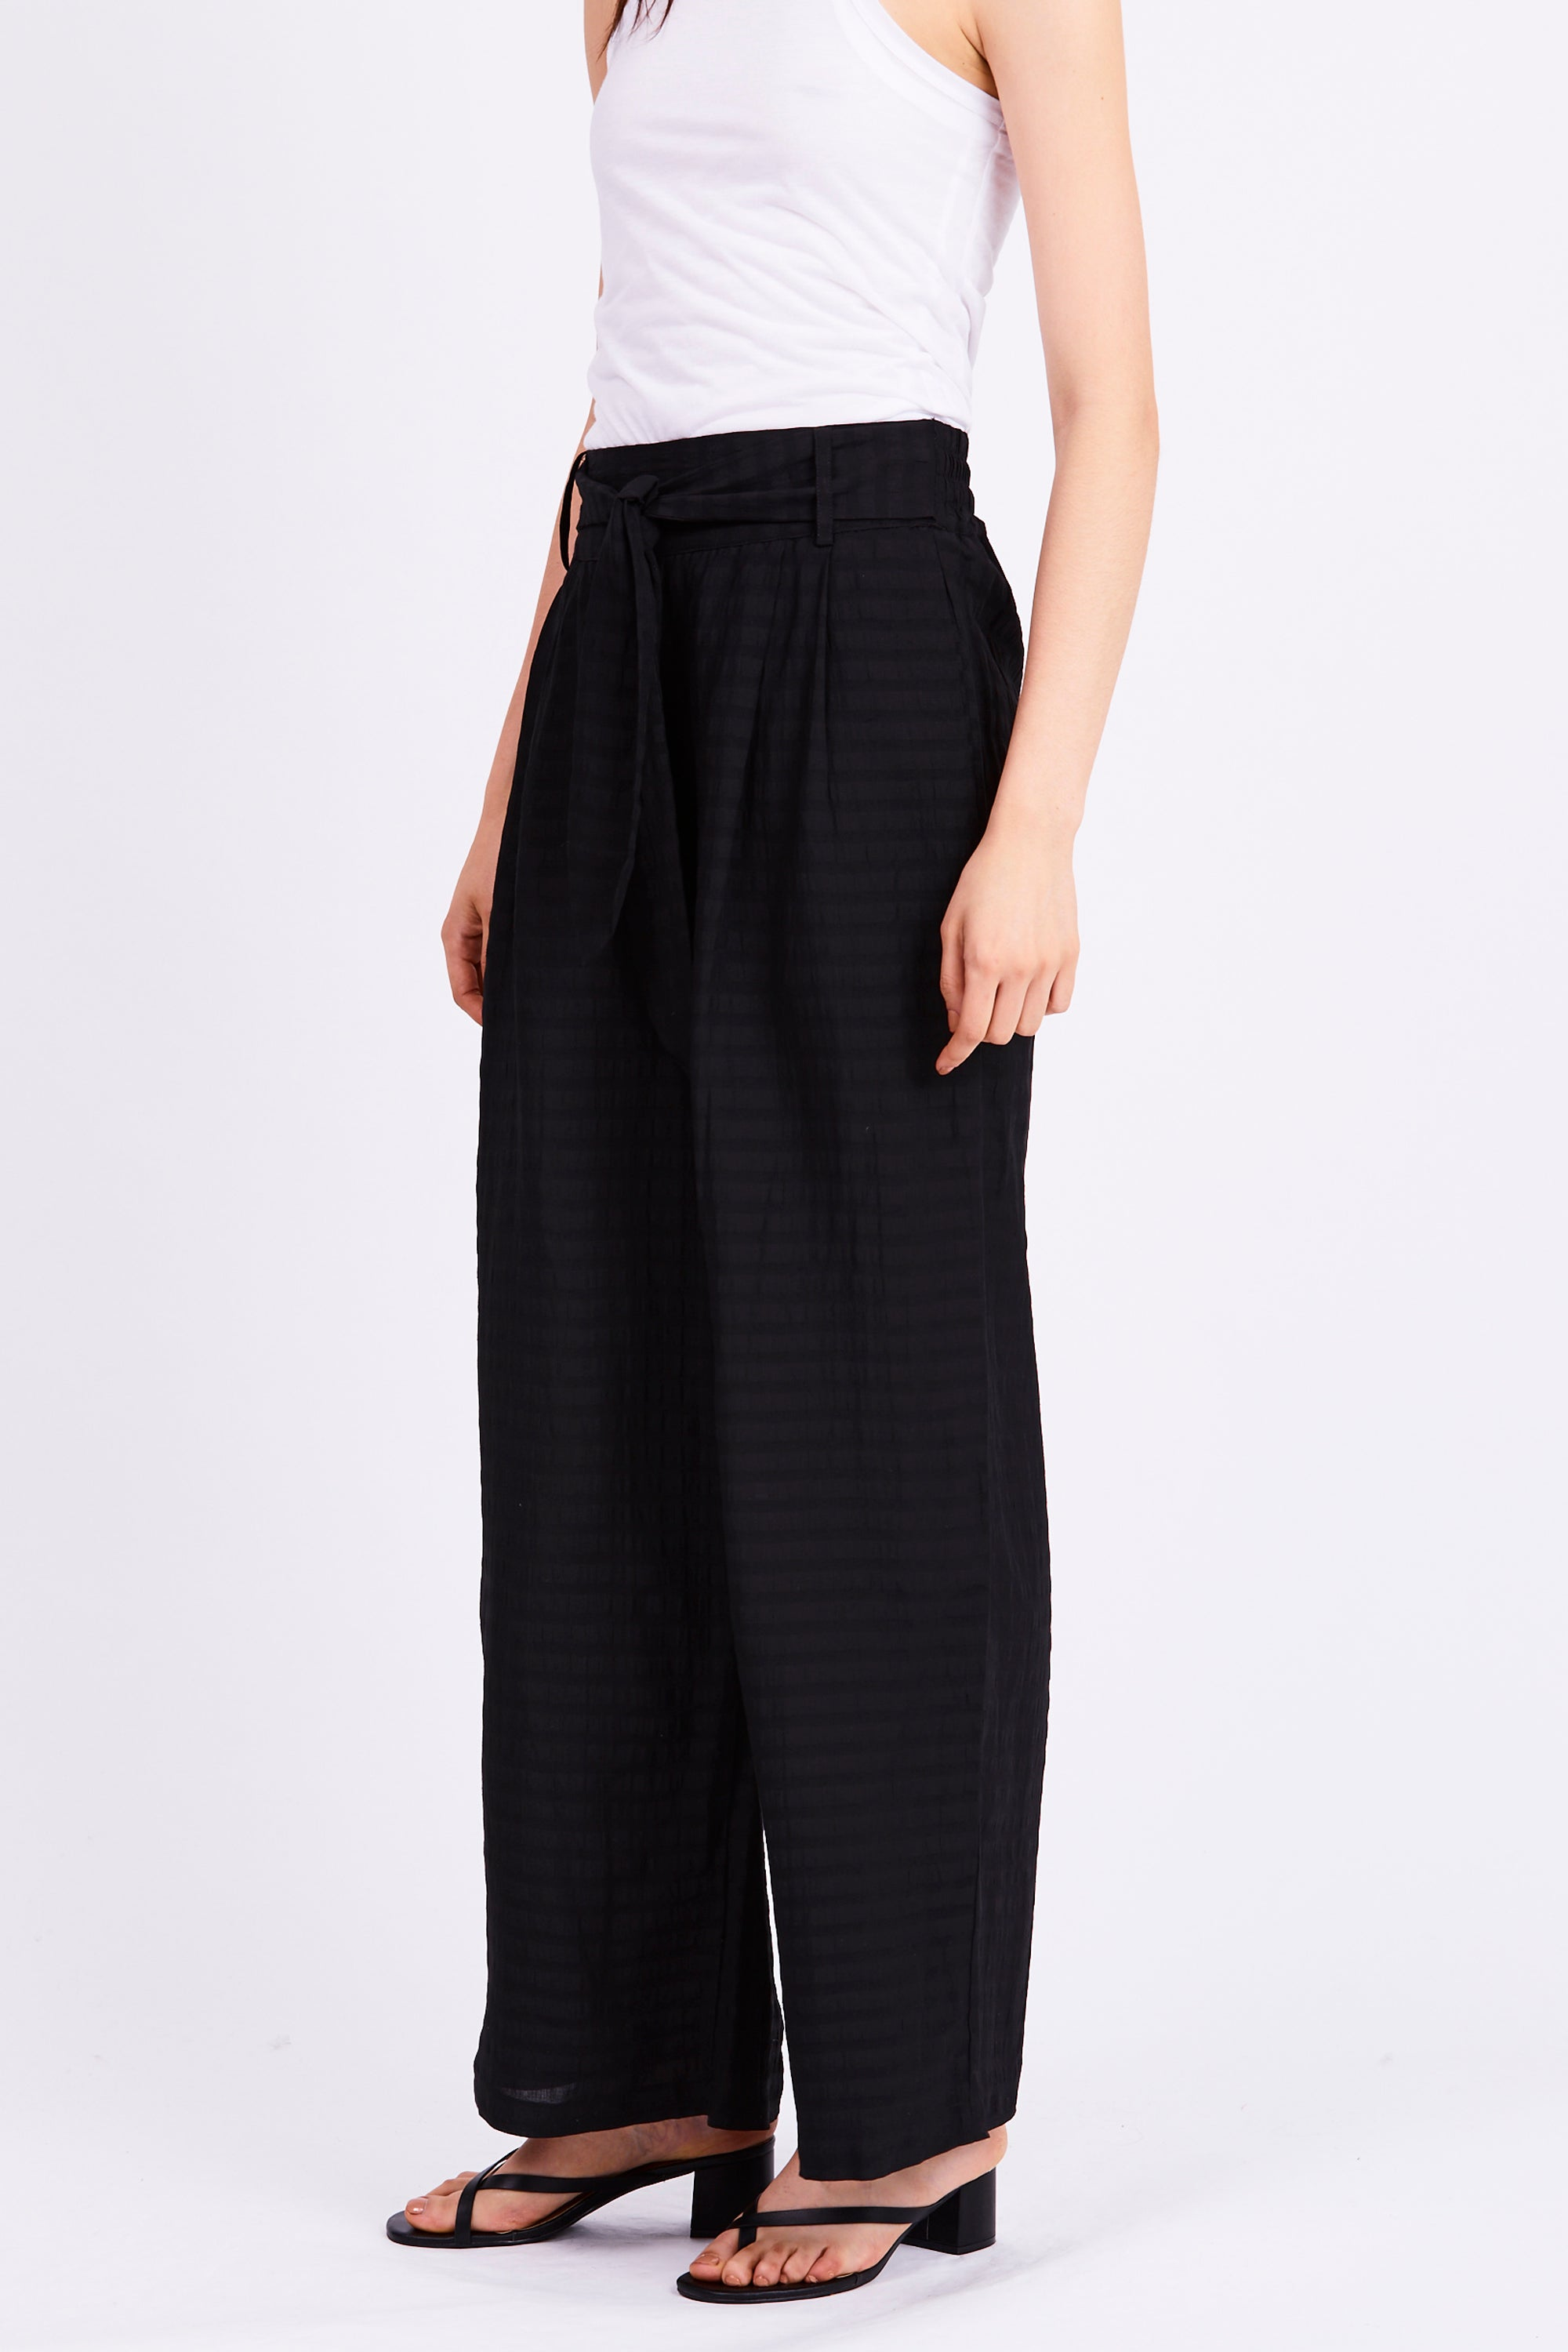 DAY BREAK TIE TROUSER | BLACK STRIPE